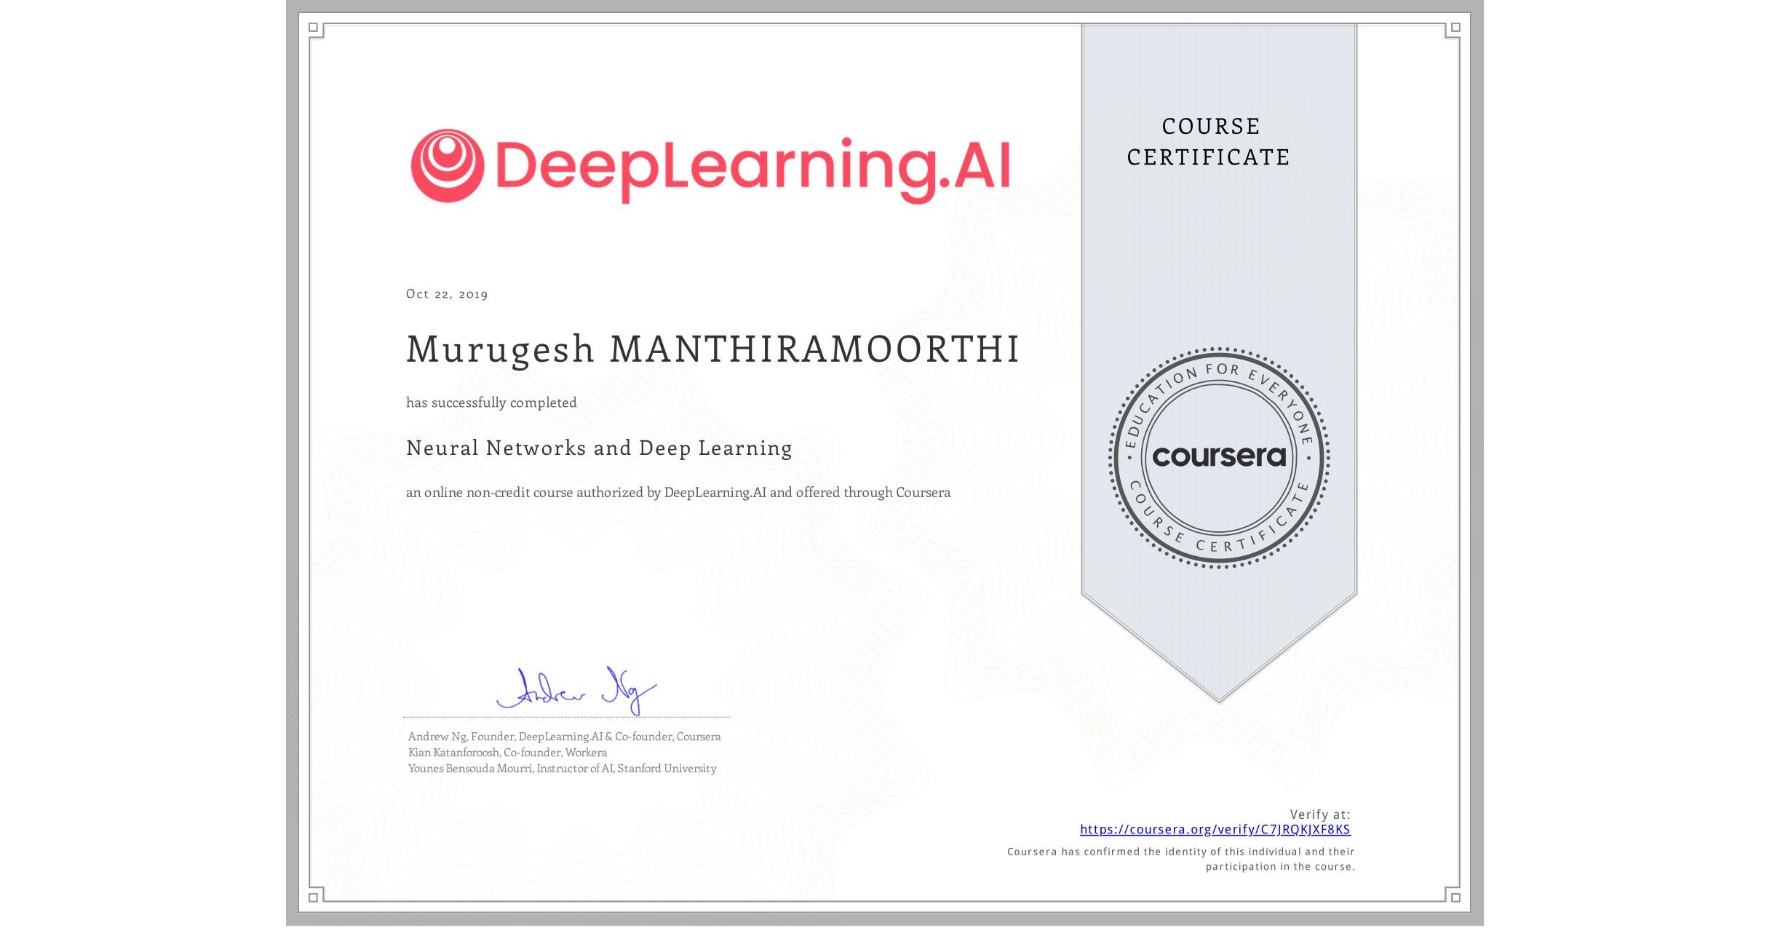 View certificate for Murugesh Manthiramoorthi, Neural Networks and Deep Learning, an online non-credit course authorized by DeepLearning.AI and offered through Coursera